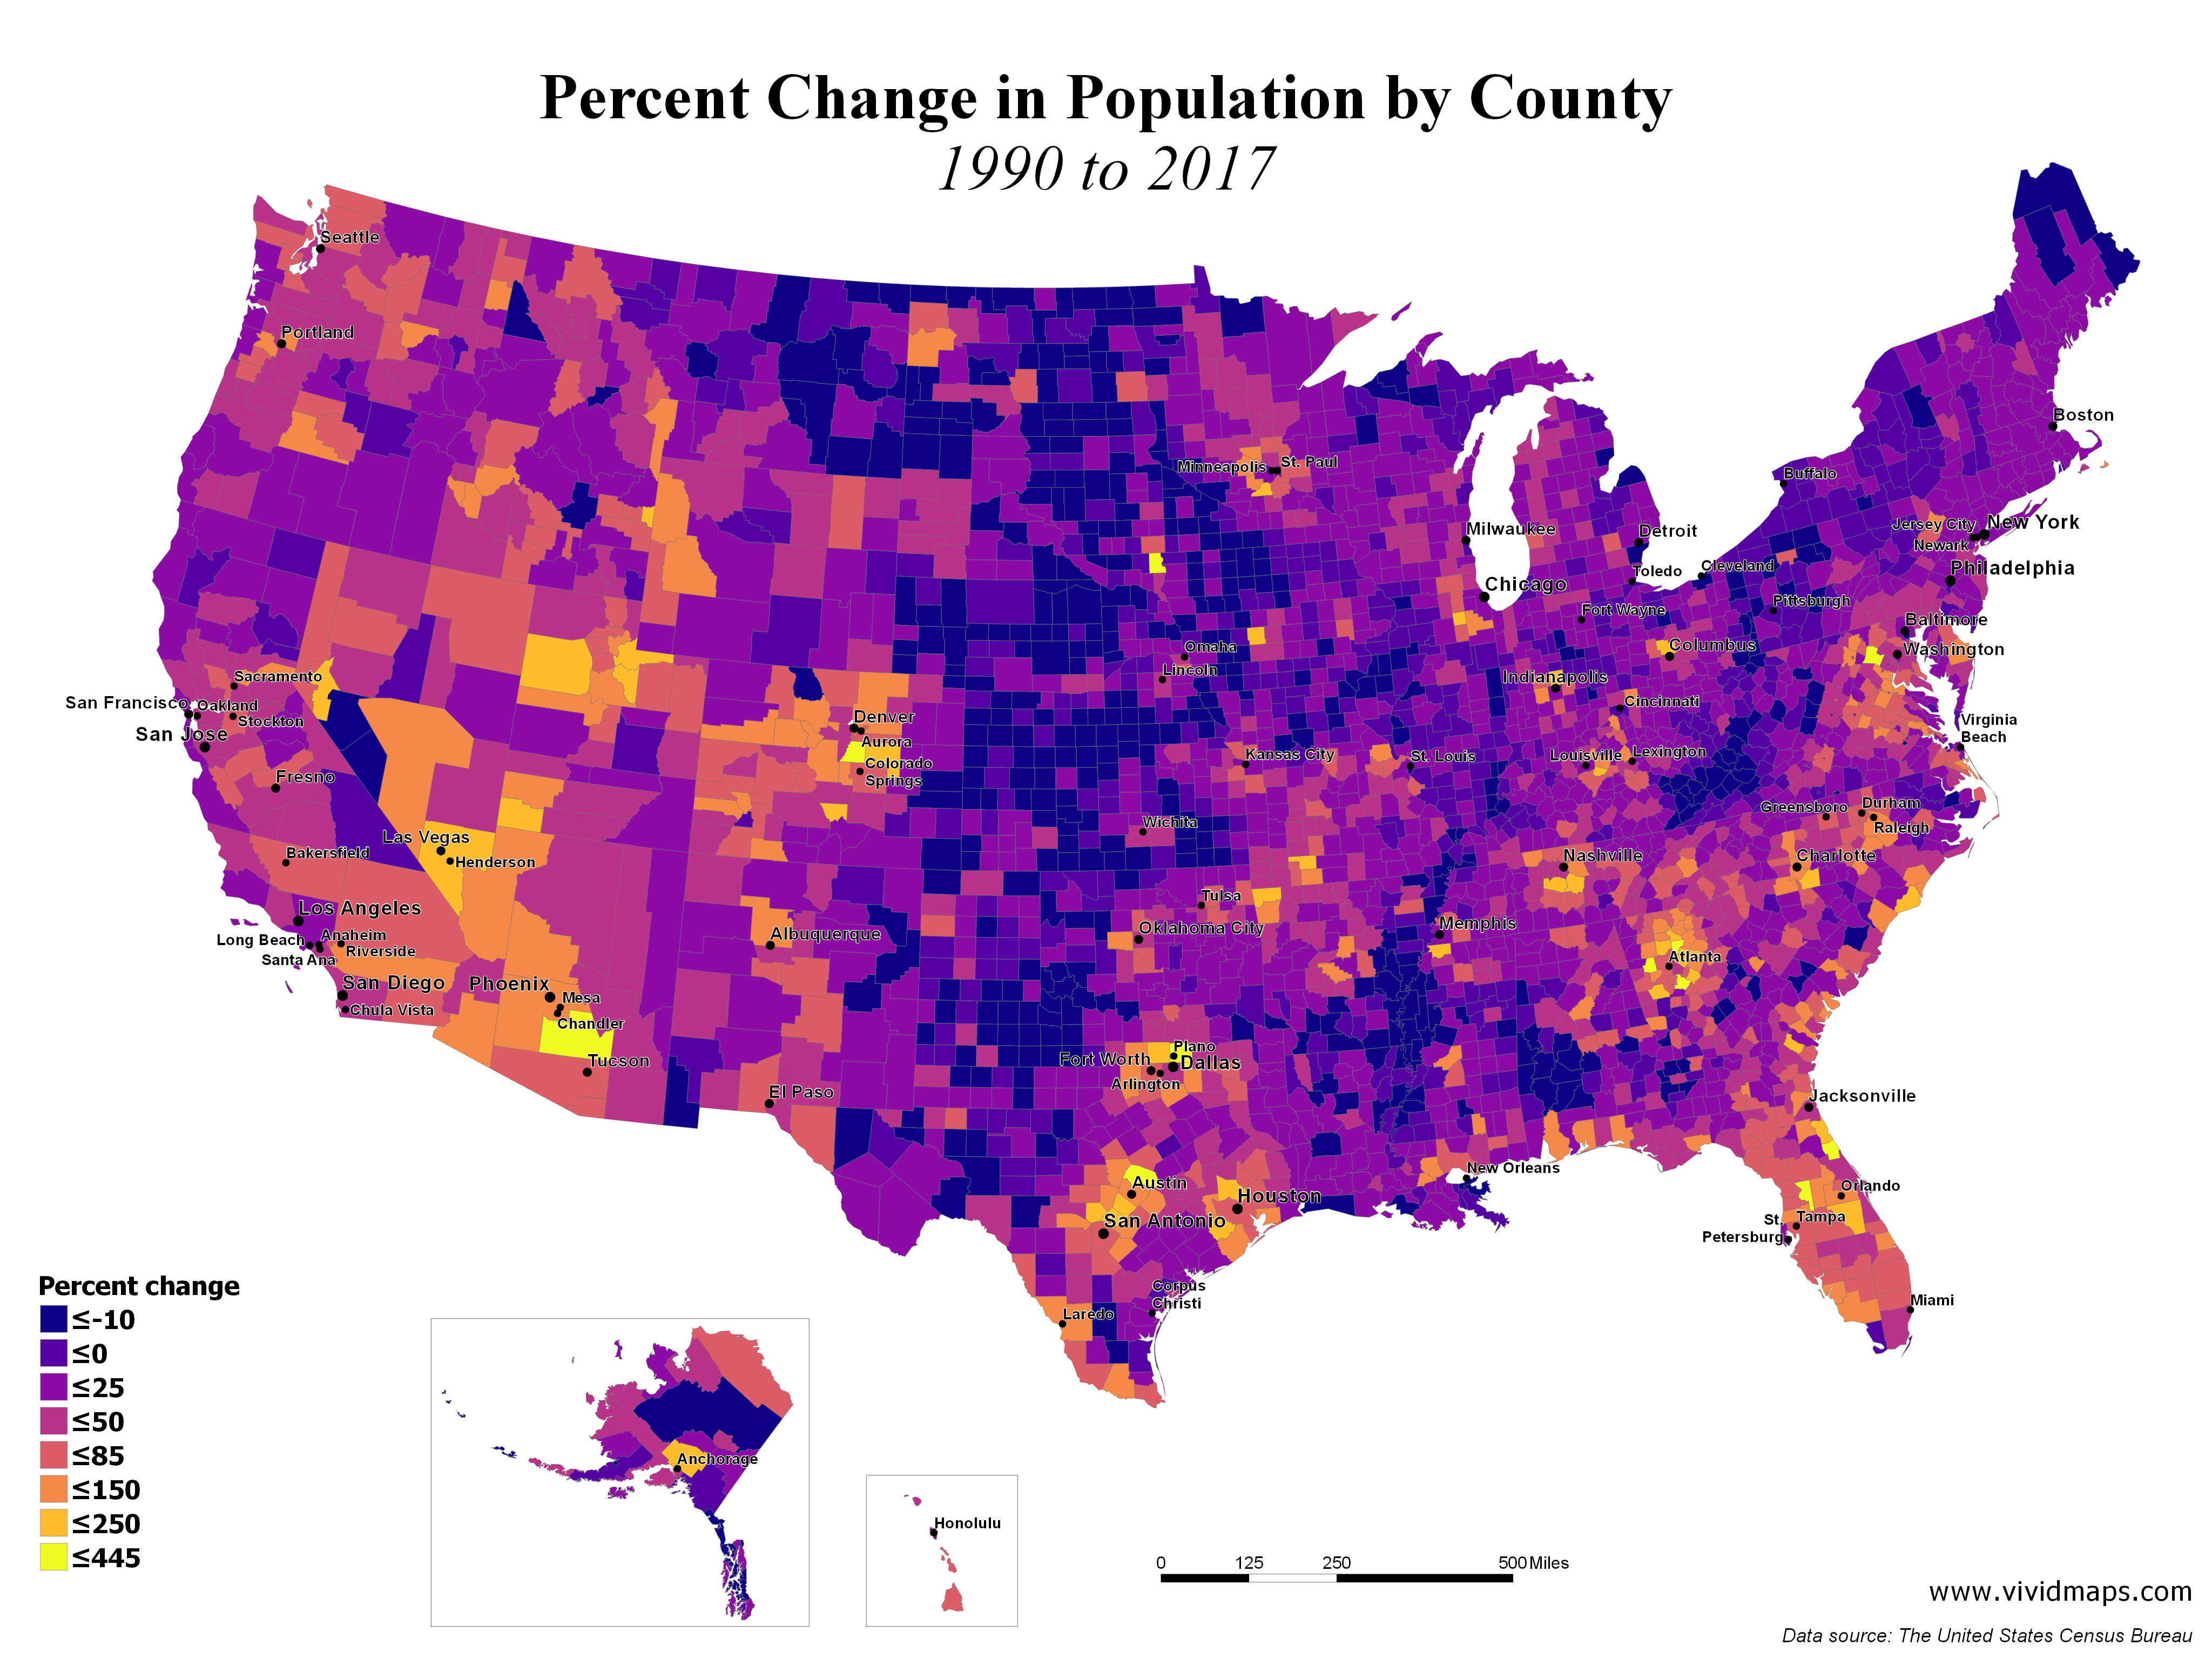 Percent Change in Population by County (1990 - 2017)